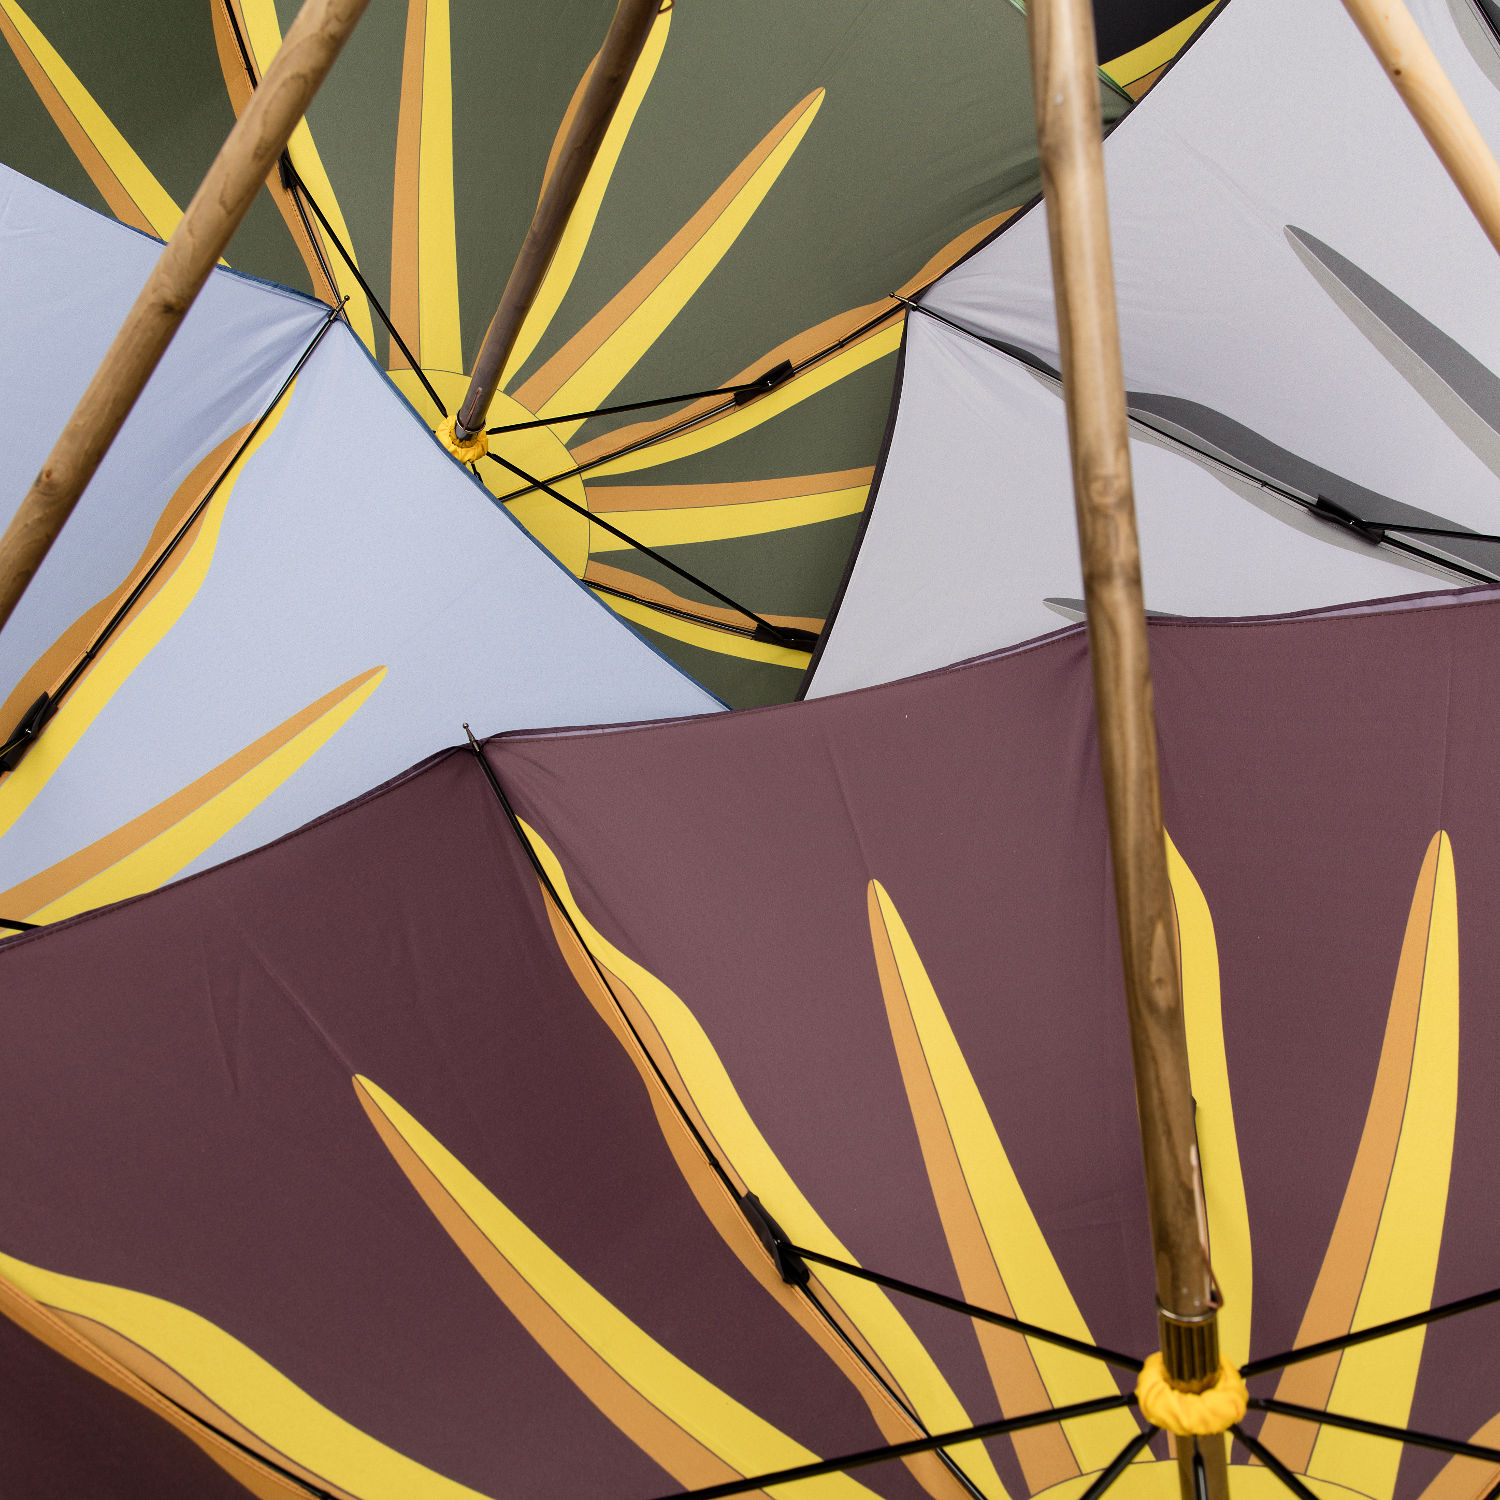 Four open umbrellas overlapping each other. They are in green, grey, pale blue and burgundy with a sunburst print.